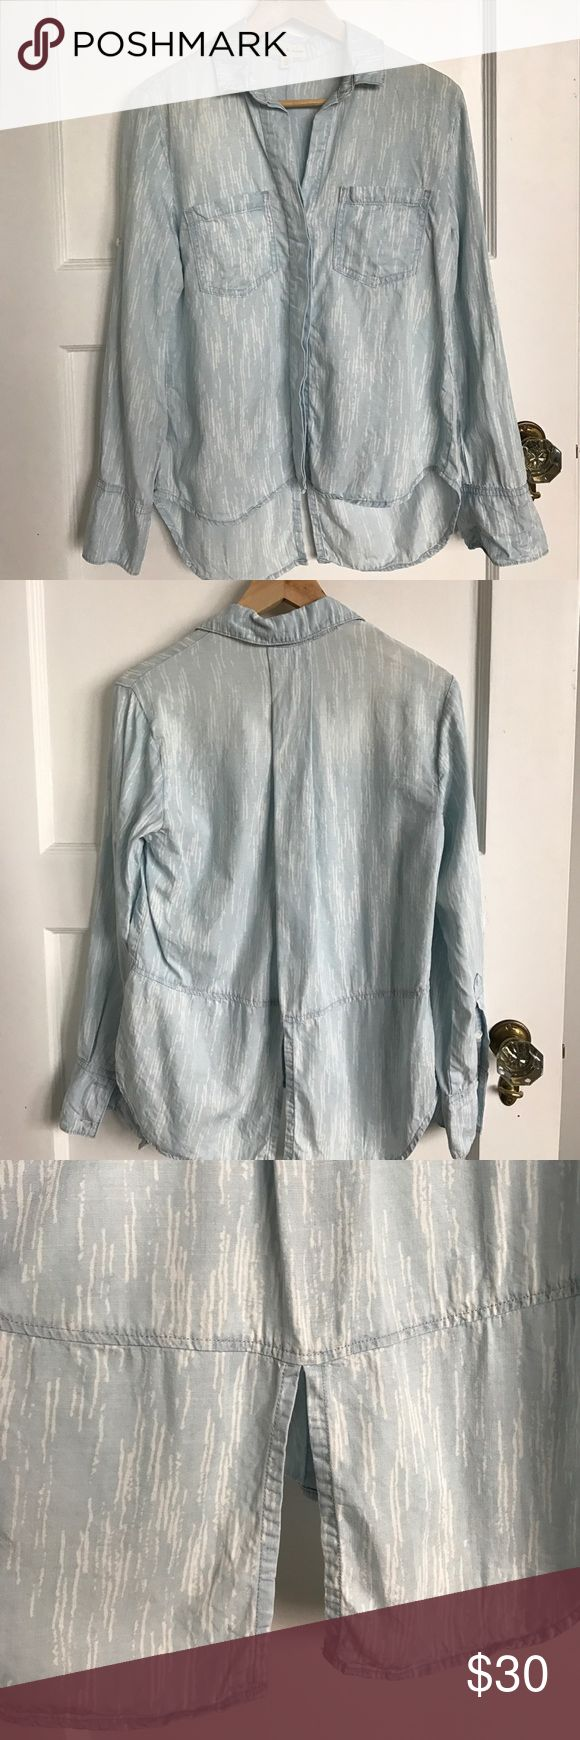 Cloth and stone anthropology light blue button up Cloth and stone is by far my favorite anthropology line. Thick durable and yet so soft fabric. Two pockets, button-down with fabric on front to cover buttons. Buttons on sleeves for easy roll and super fun split Texido back. Anthropologie Tops Button Down Shirts